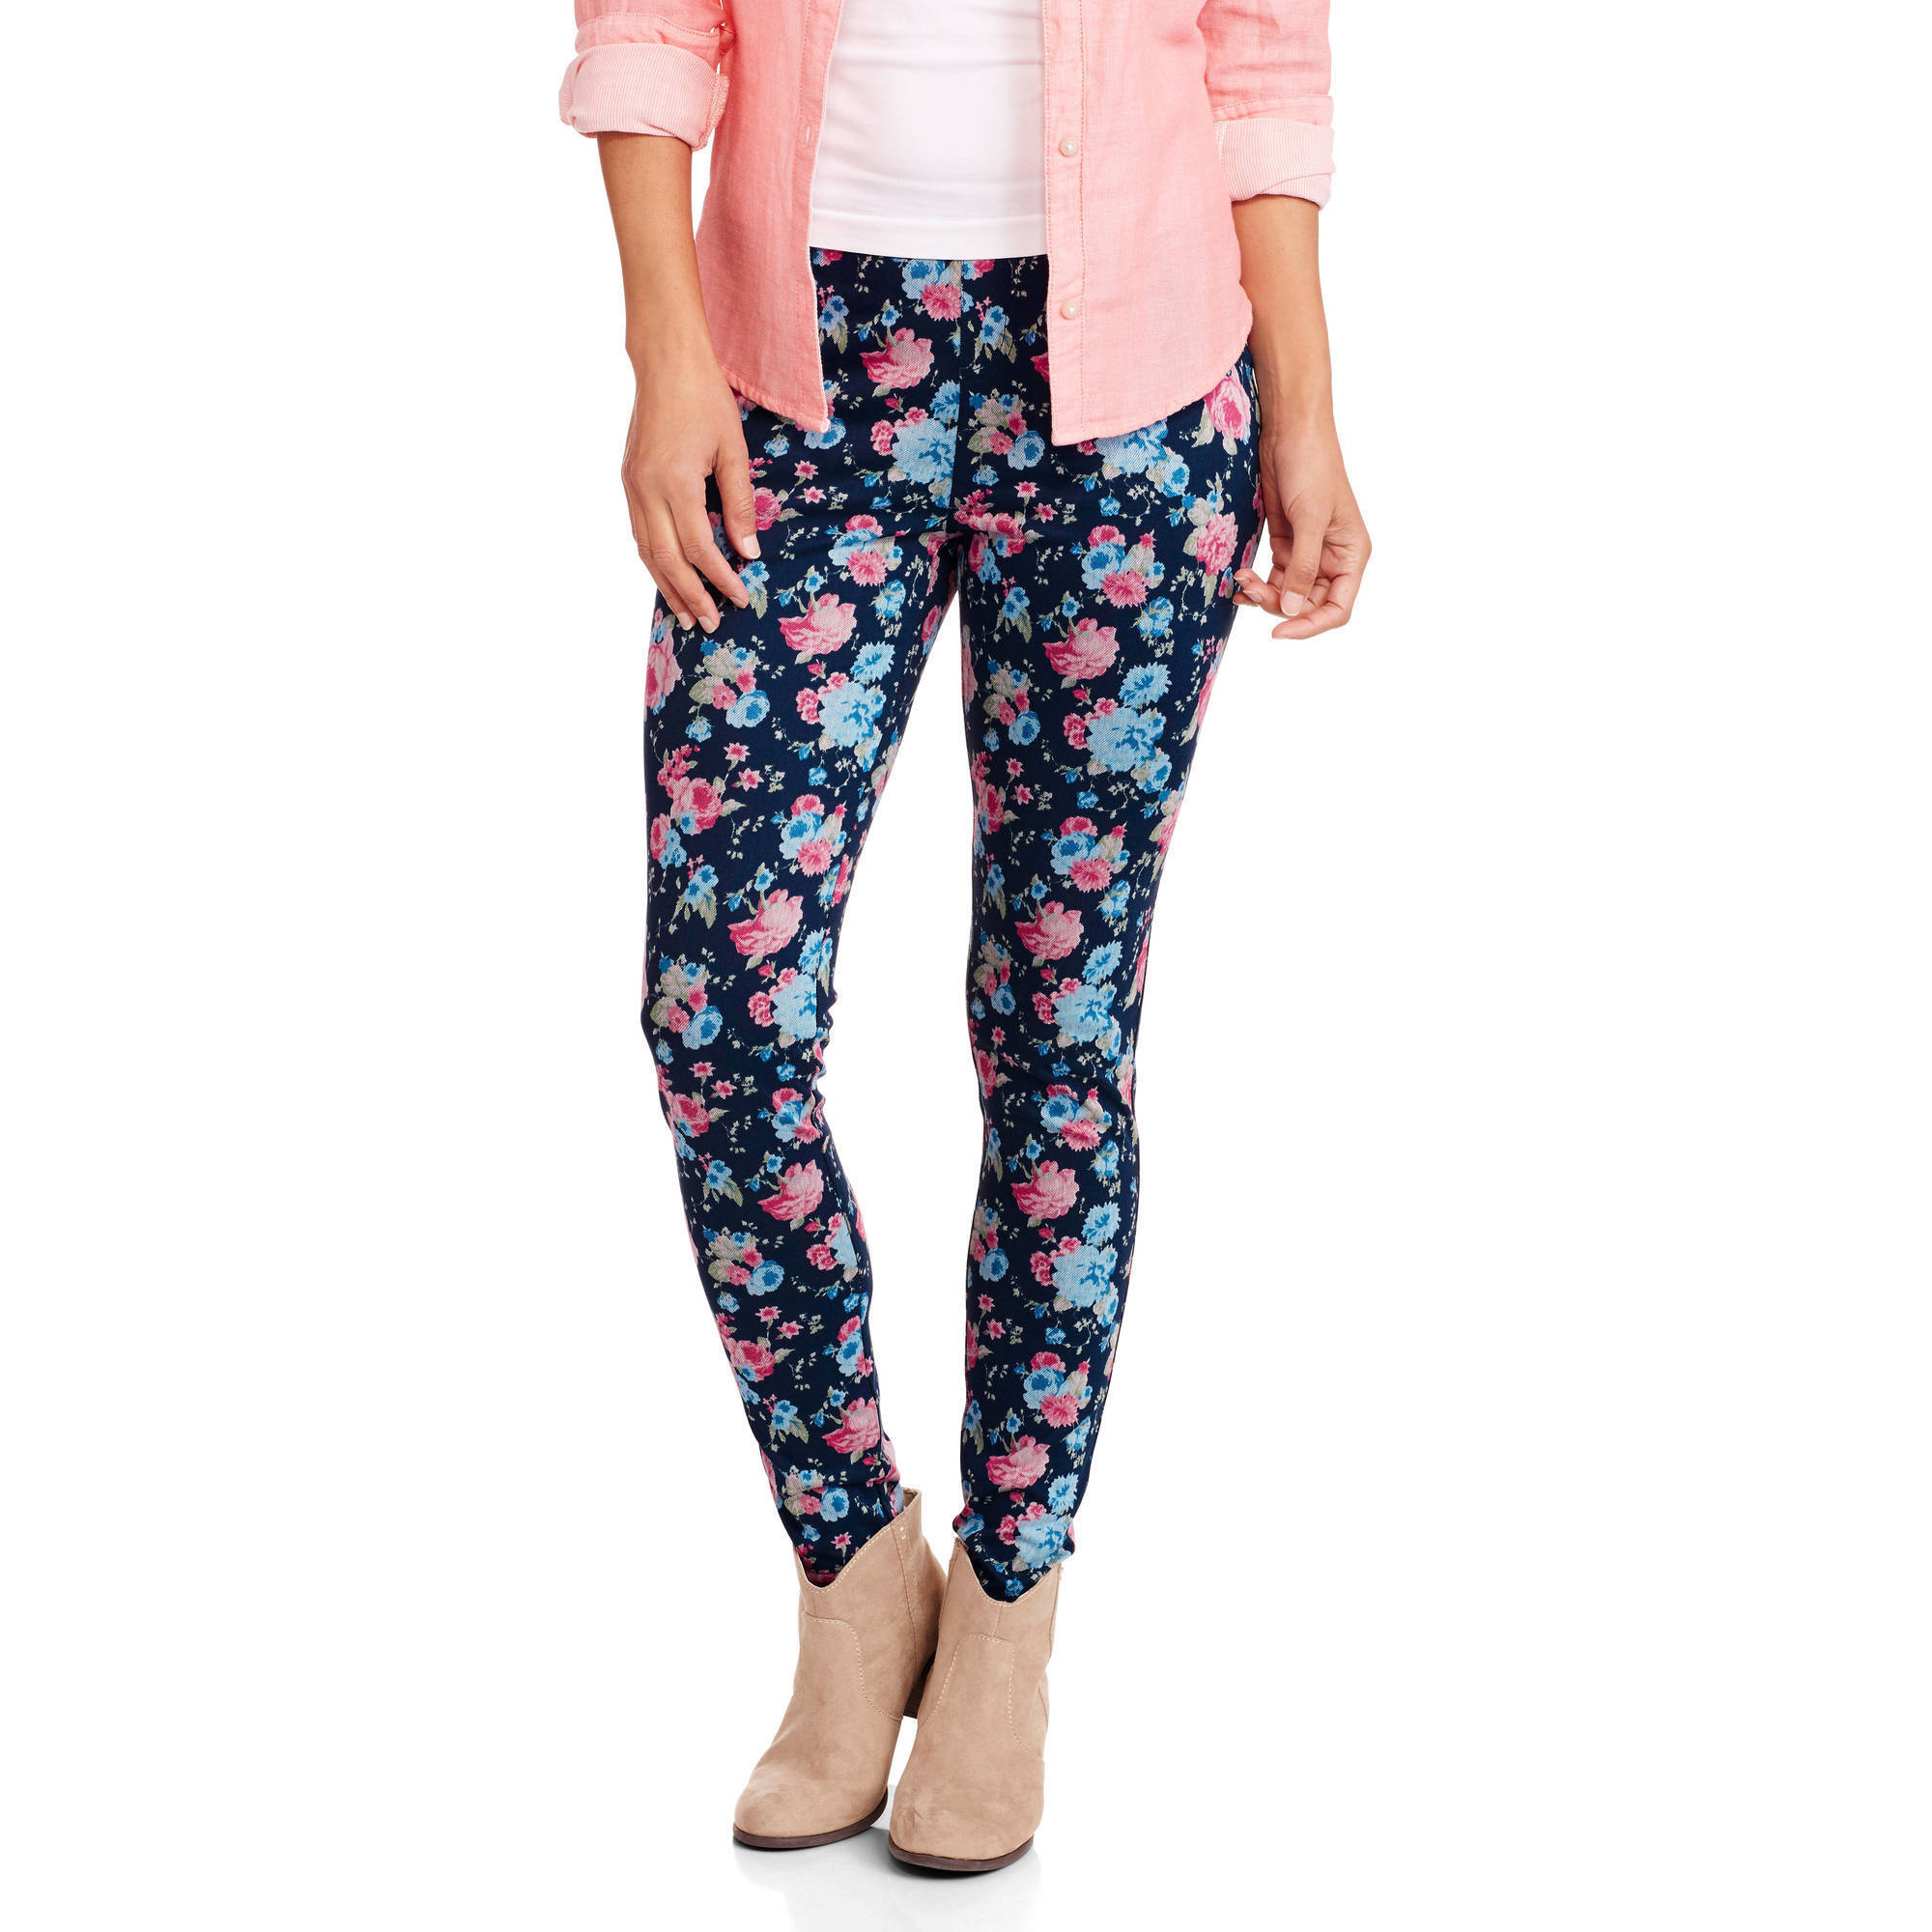 Faded Glory Women's Full Length Printed Knit Color Jegging